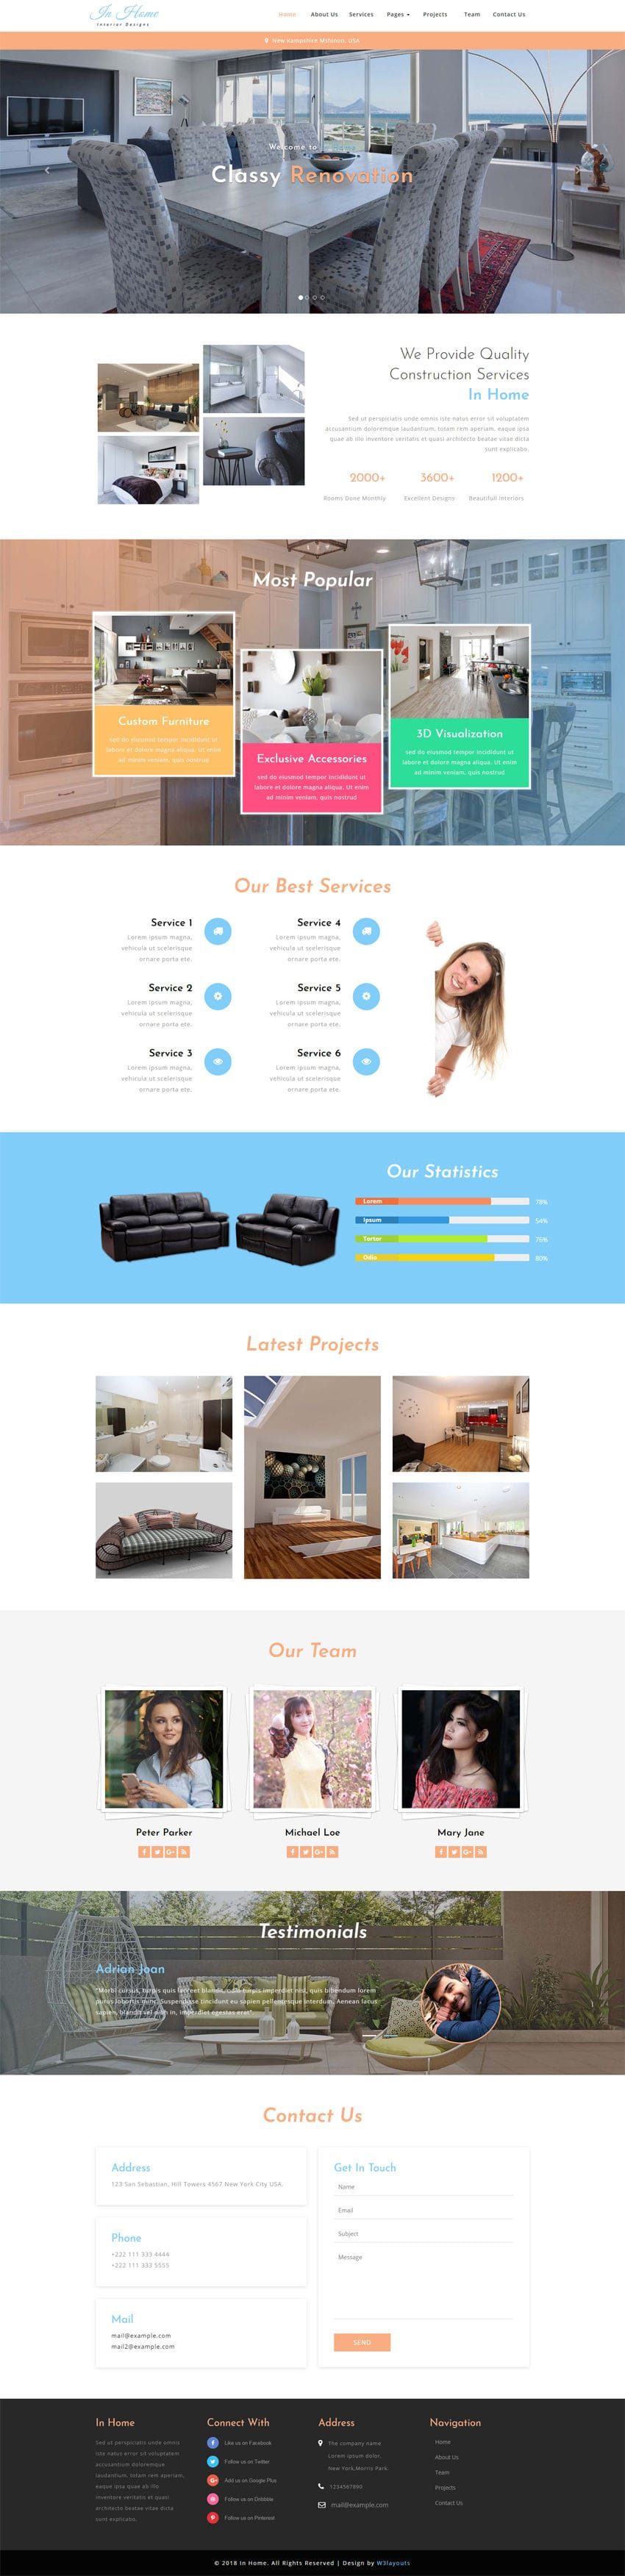 In Home Interior Category Bootstrap Responsive Web Template Free D Home Design Html on free design your dream home, free virtual home design, 3d mansion design, architect home design, free design programs, houzz home design, free design your own kitchen, design home design, free foreclosed home listings, interior design, photoshop home design, modern house design, exterior home design, self-sustaining home design, this home app design, cat home design, free software home design, make a 3d design, 3ds max home design, blender home design,